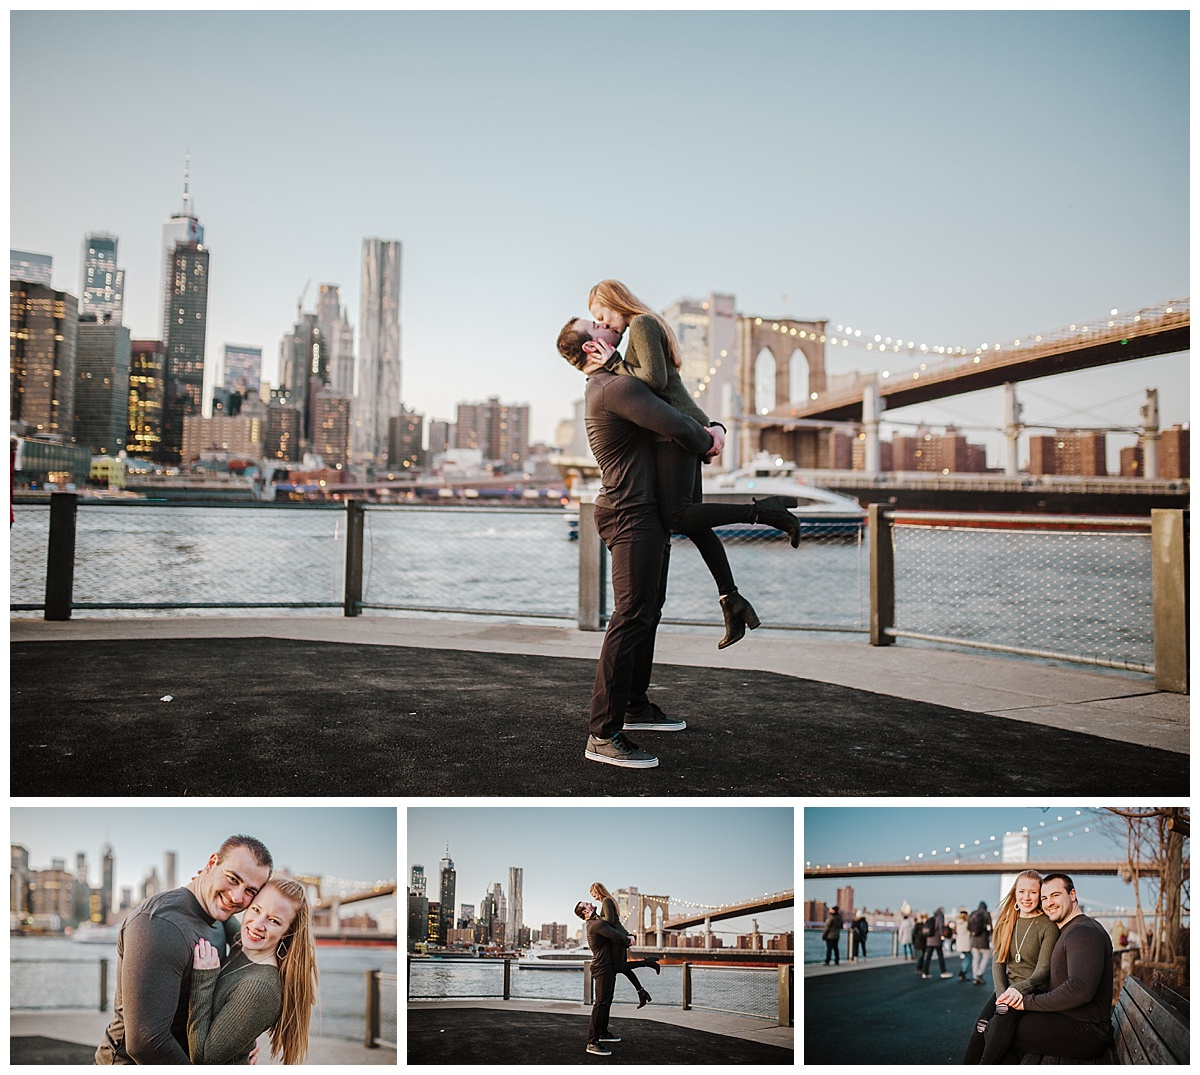 Brooklyn Bridge Park - NYC Destination Engagement Session - Sara & Tim